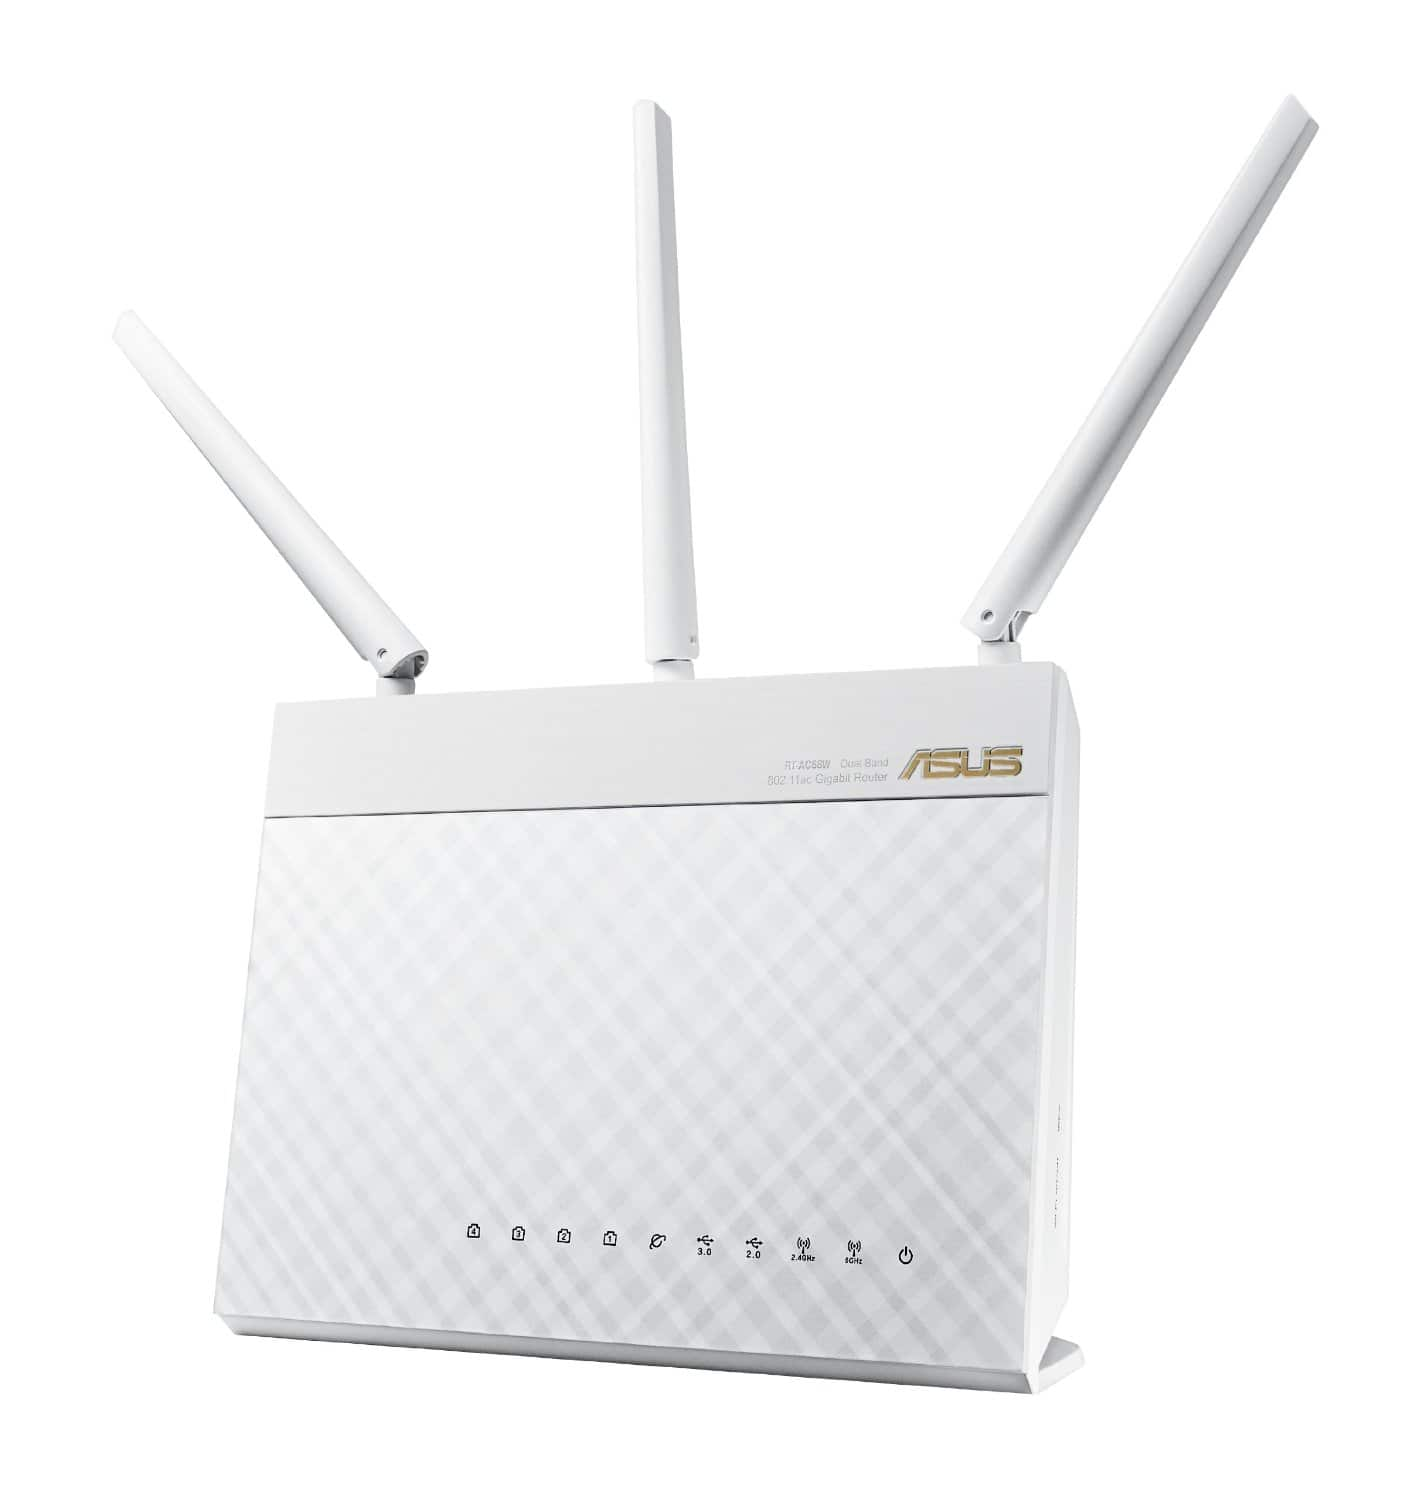 ASUS RT-AC68W Router, 1900 Mbps, $127.99 @ Amazon